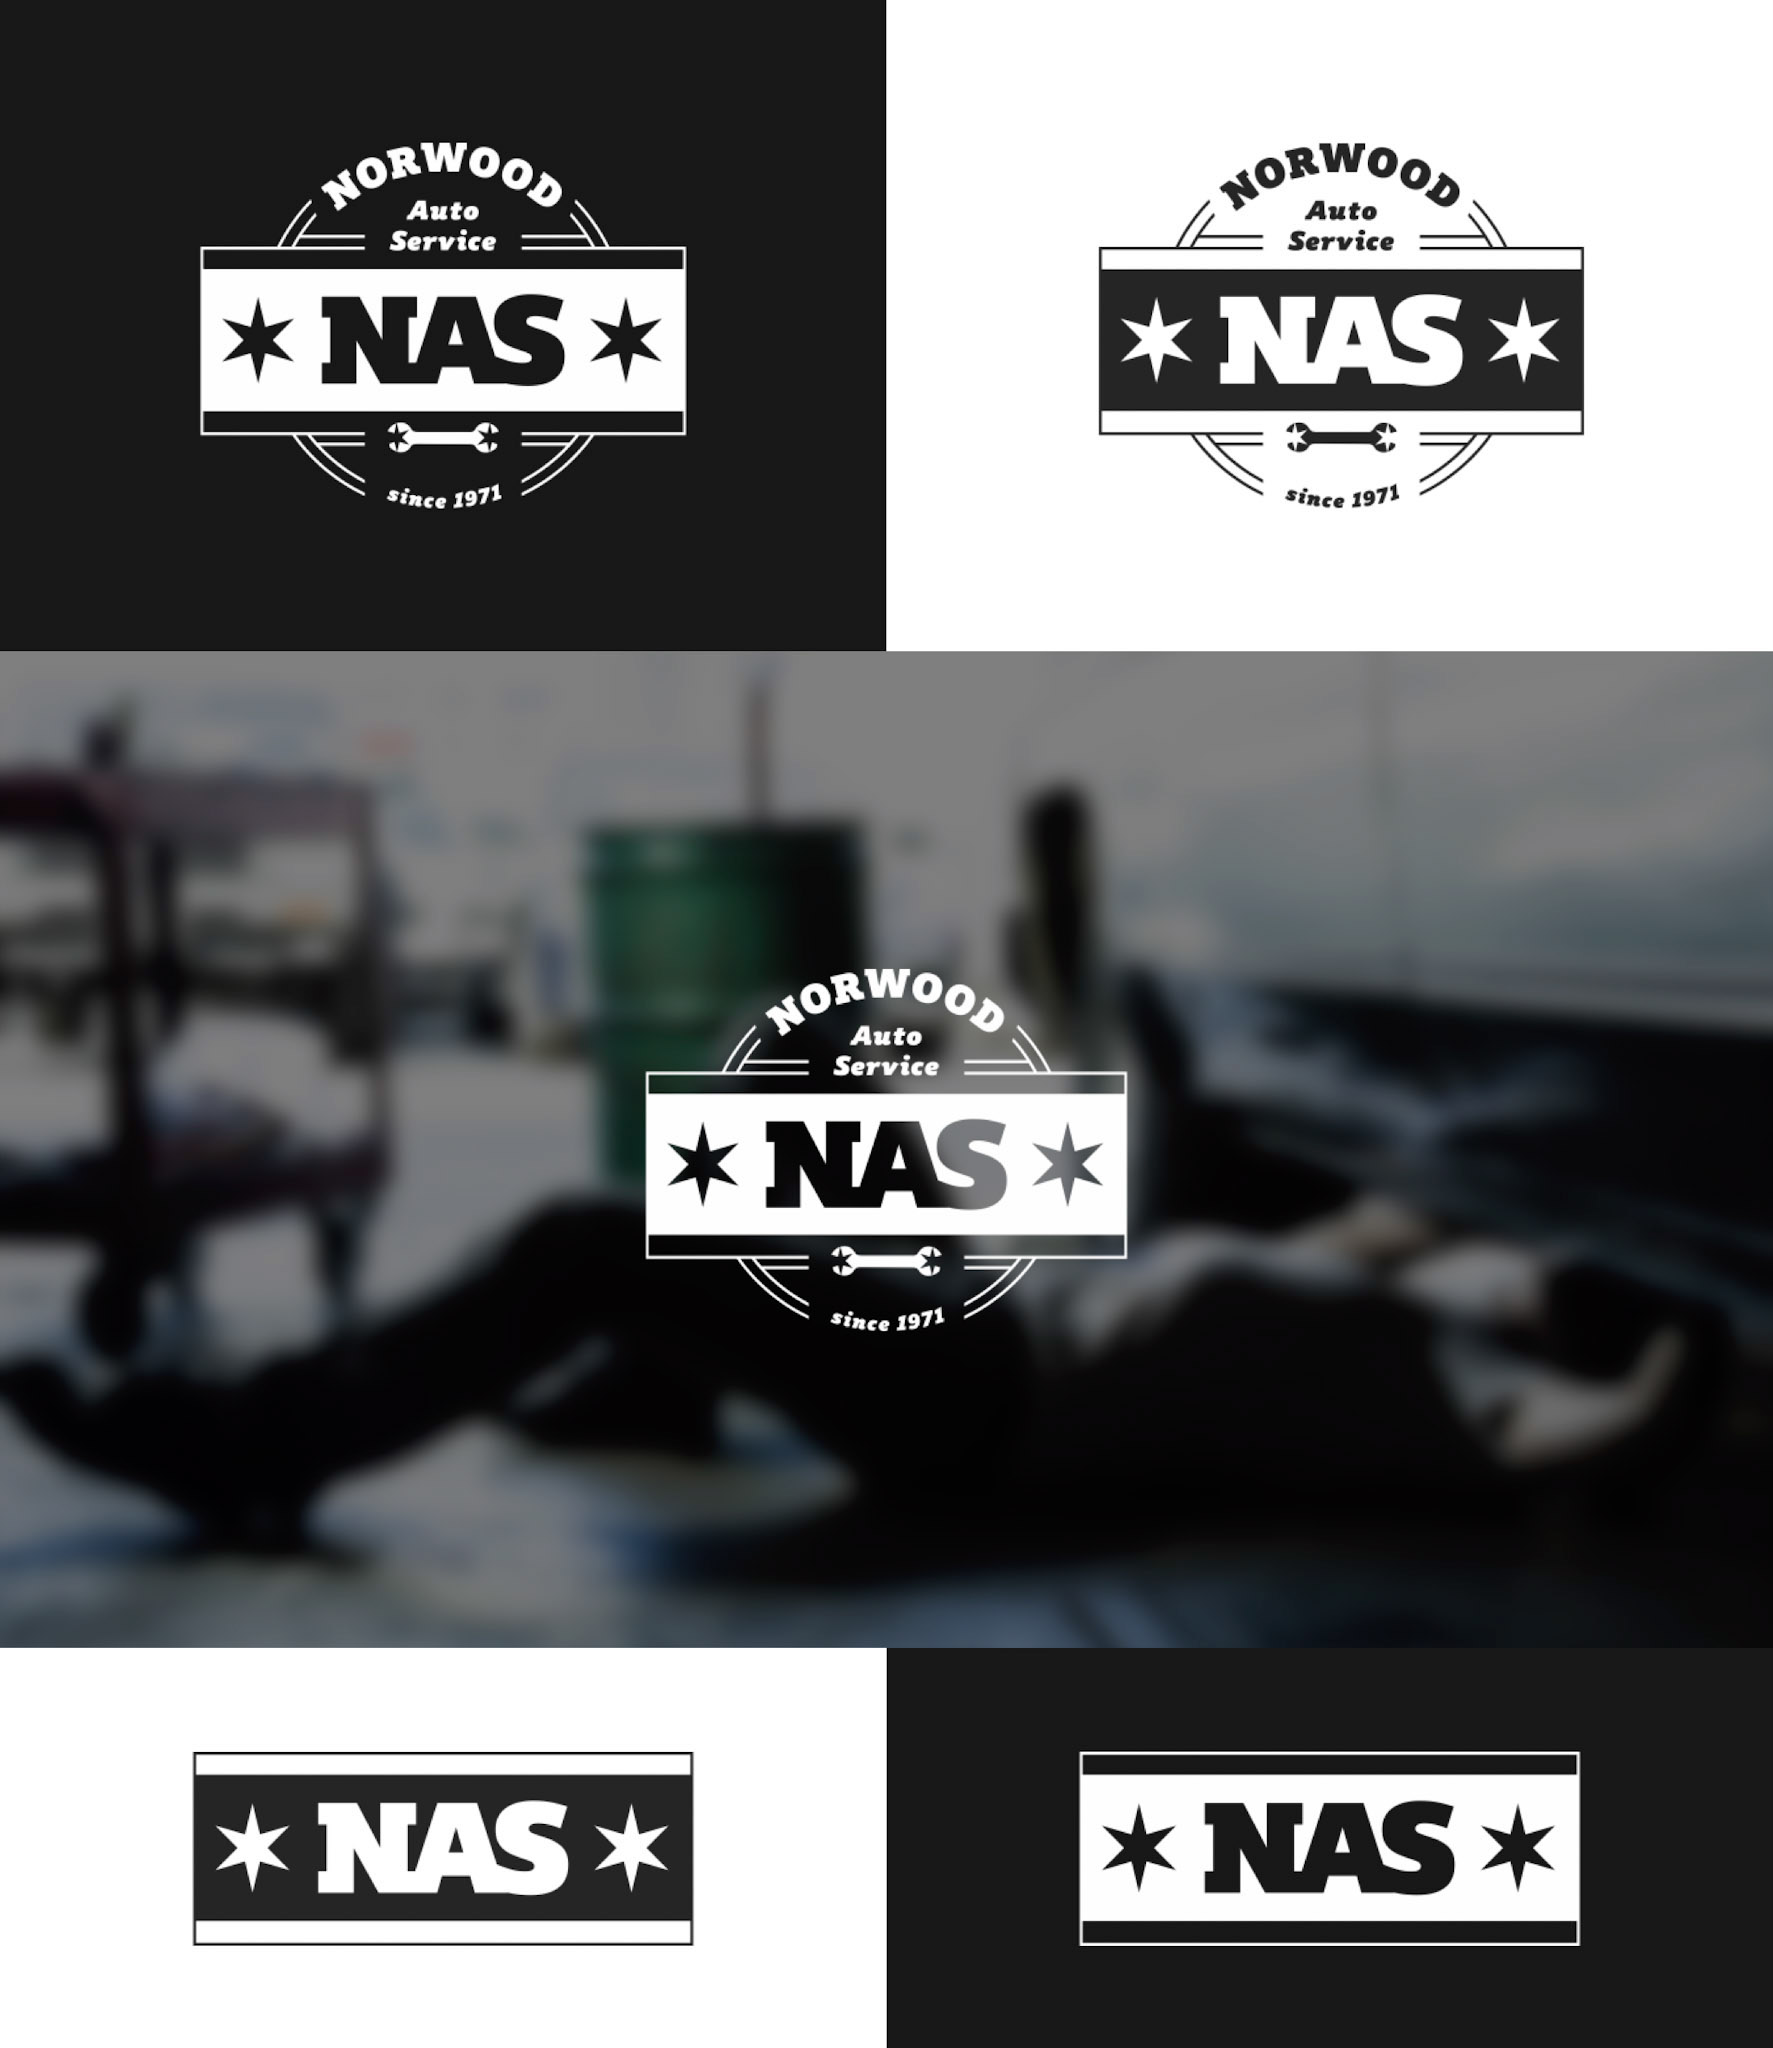 The top of this image shows the white logo on black, as well as the black logo on white. The middle of the image shows the white logo overlaid on a blurred background of a mechanic working under a car. The bottom of the image shows the shorthand version of the logo, in a similar layout as the top of the image.